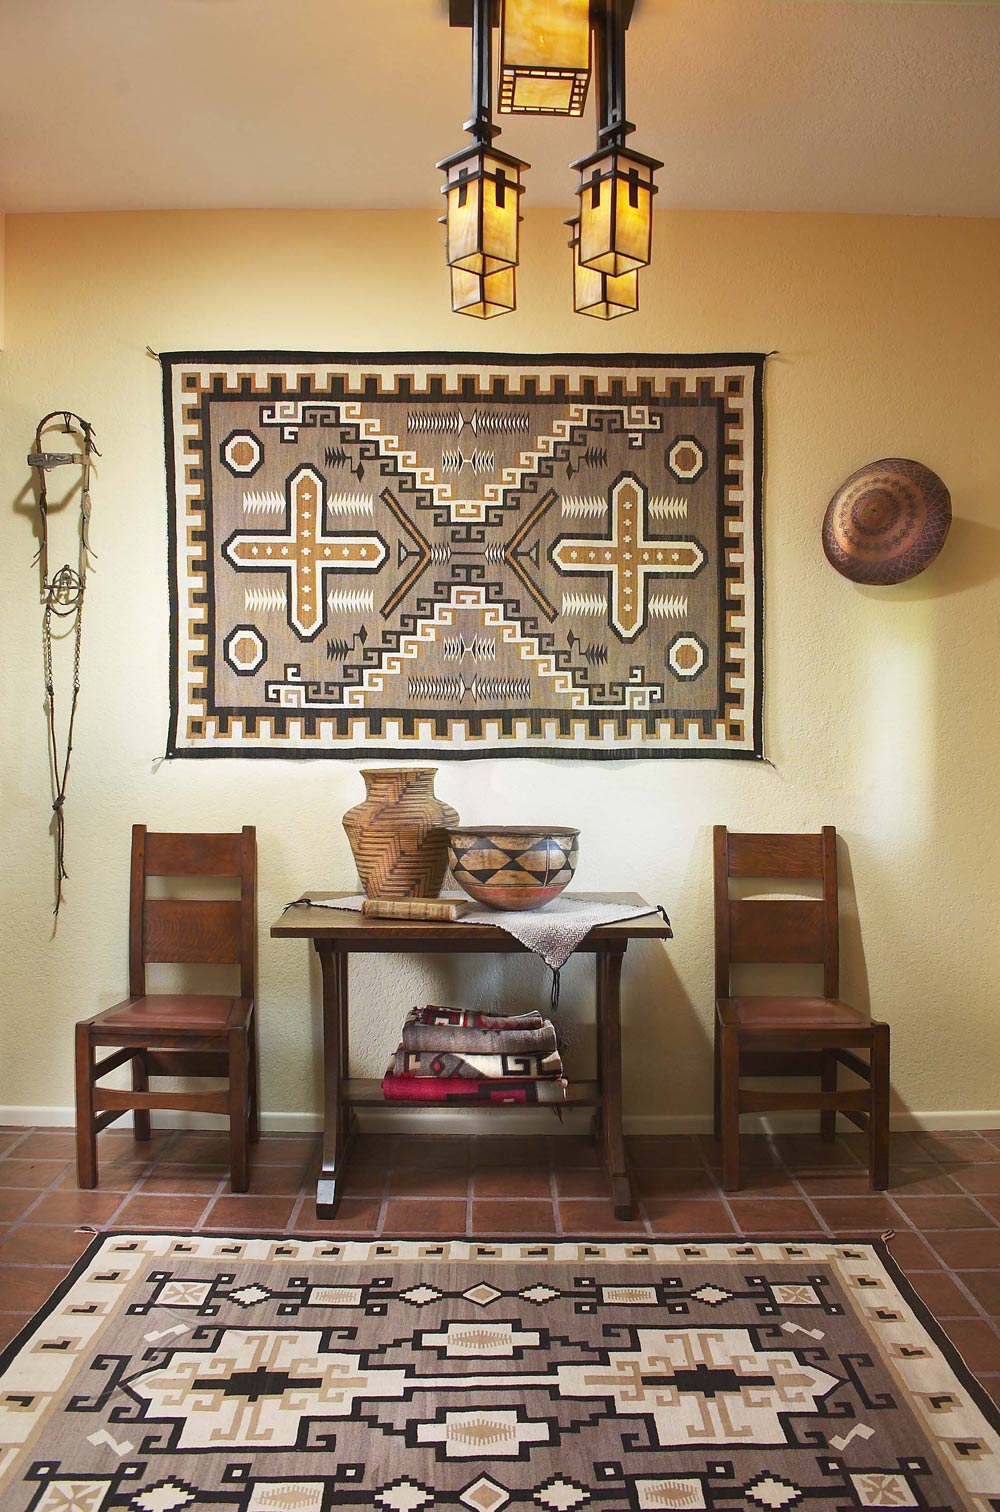 WSHG.NET BLOG | 5 Ways to Transform a Room with Navajo Weavings | At on navajo border designs, globe design wallpaper, irish design wallpaper, crystal design wallpaper, hopi design wallpaper, pendleton design wallpaper, navajo indian designs, anchor design wallpaper, portuguese design wallpaper, mayan design wallpaper, sioux design wallpaper, aztec design wallpaper, new mexico design wallpaper, native american design wallpaper, scout design wallpaper, samoan design wallpaper, navajo women's clothing, latin design wallpaper, navajo rug designs, hindi design wallpaper,